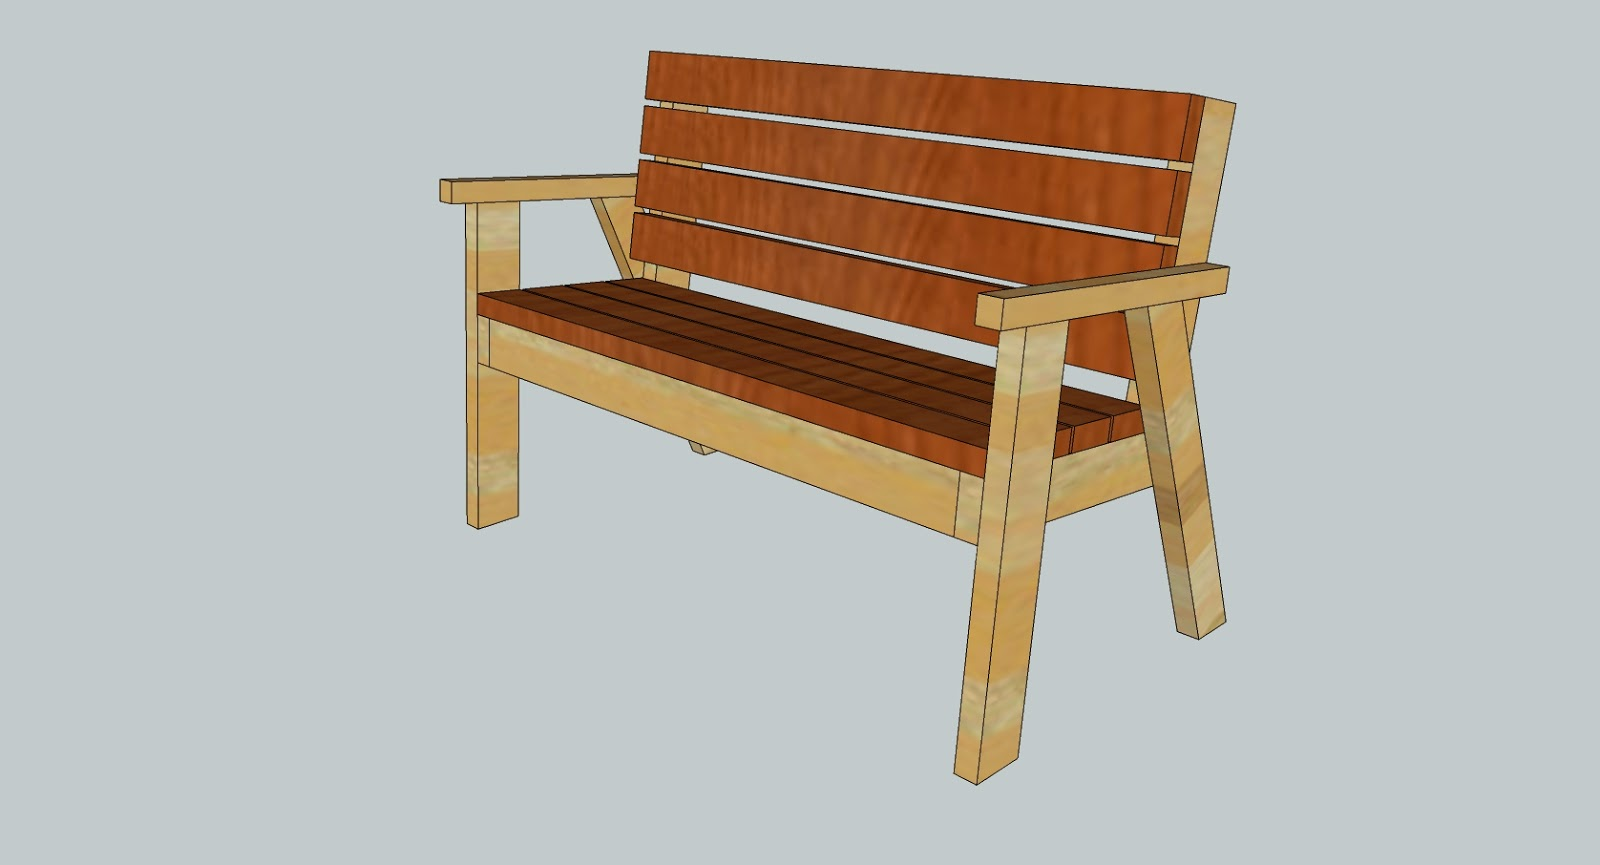 Fun With Woodworking: Free Plans